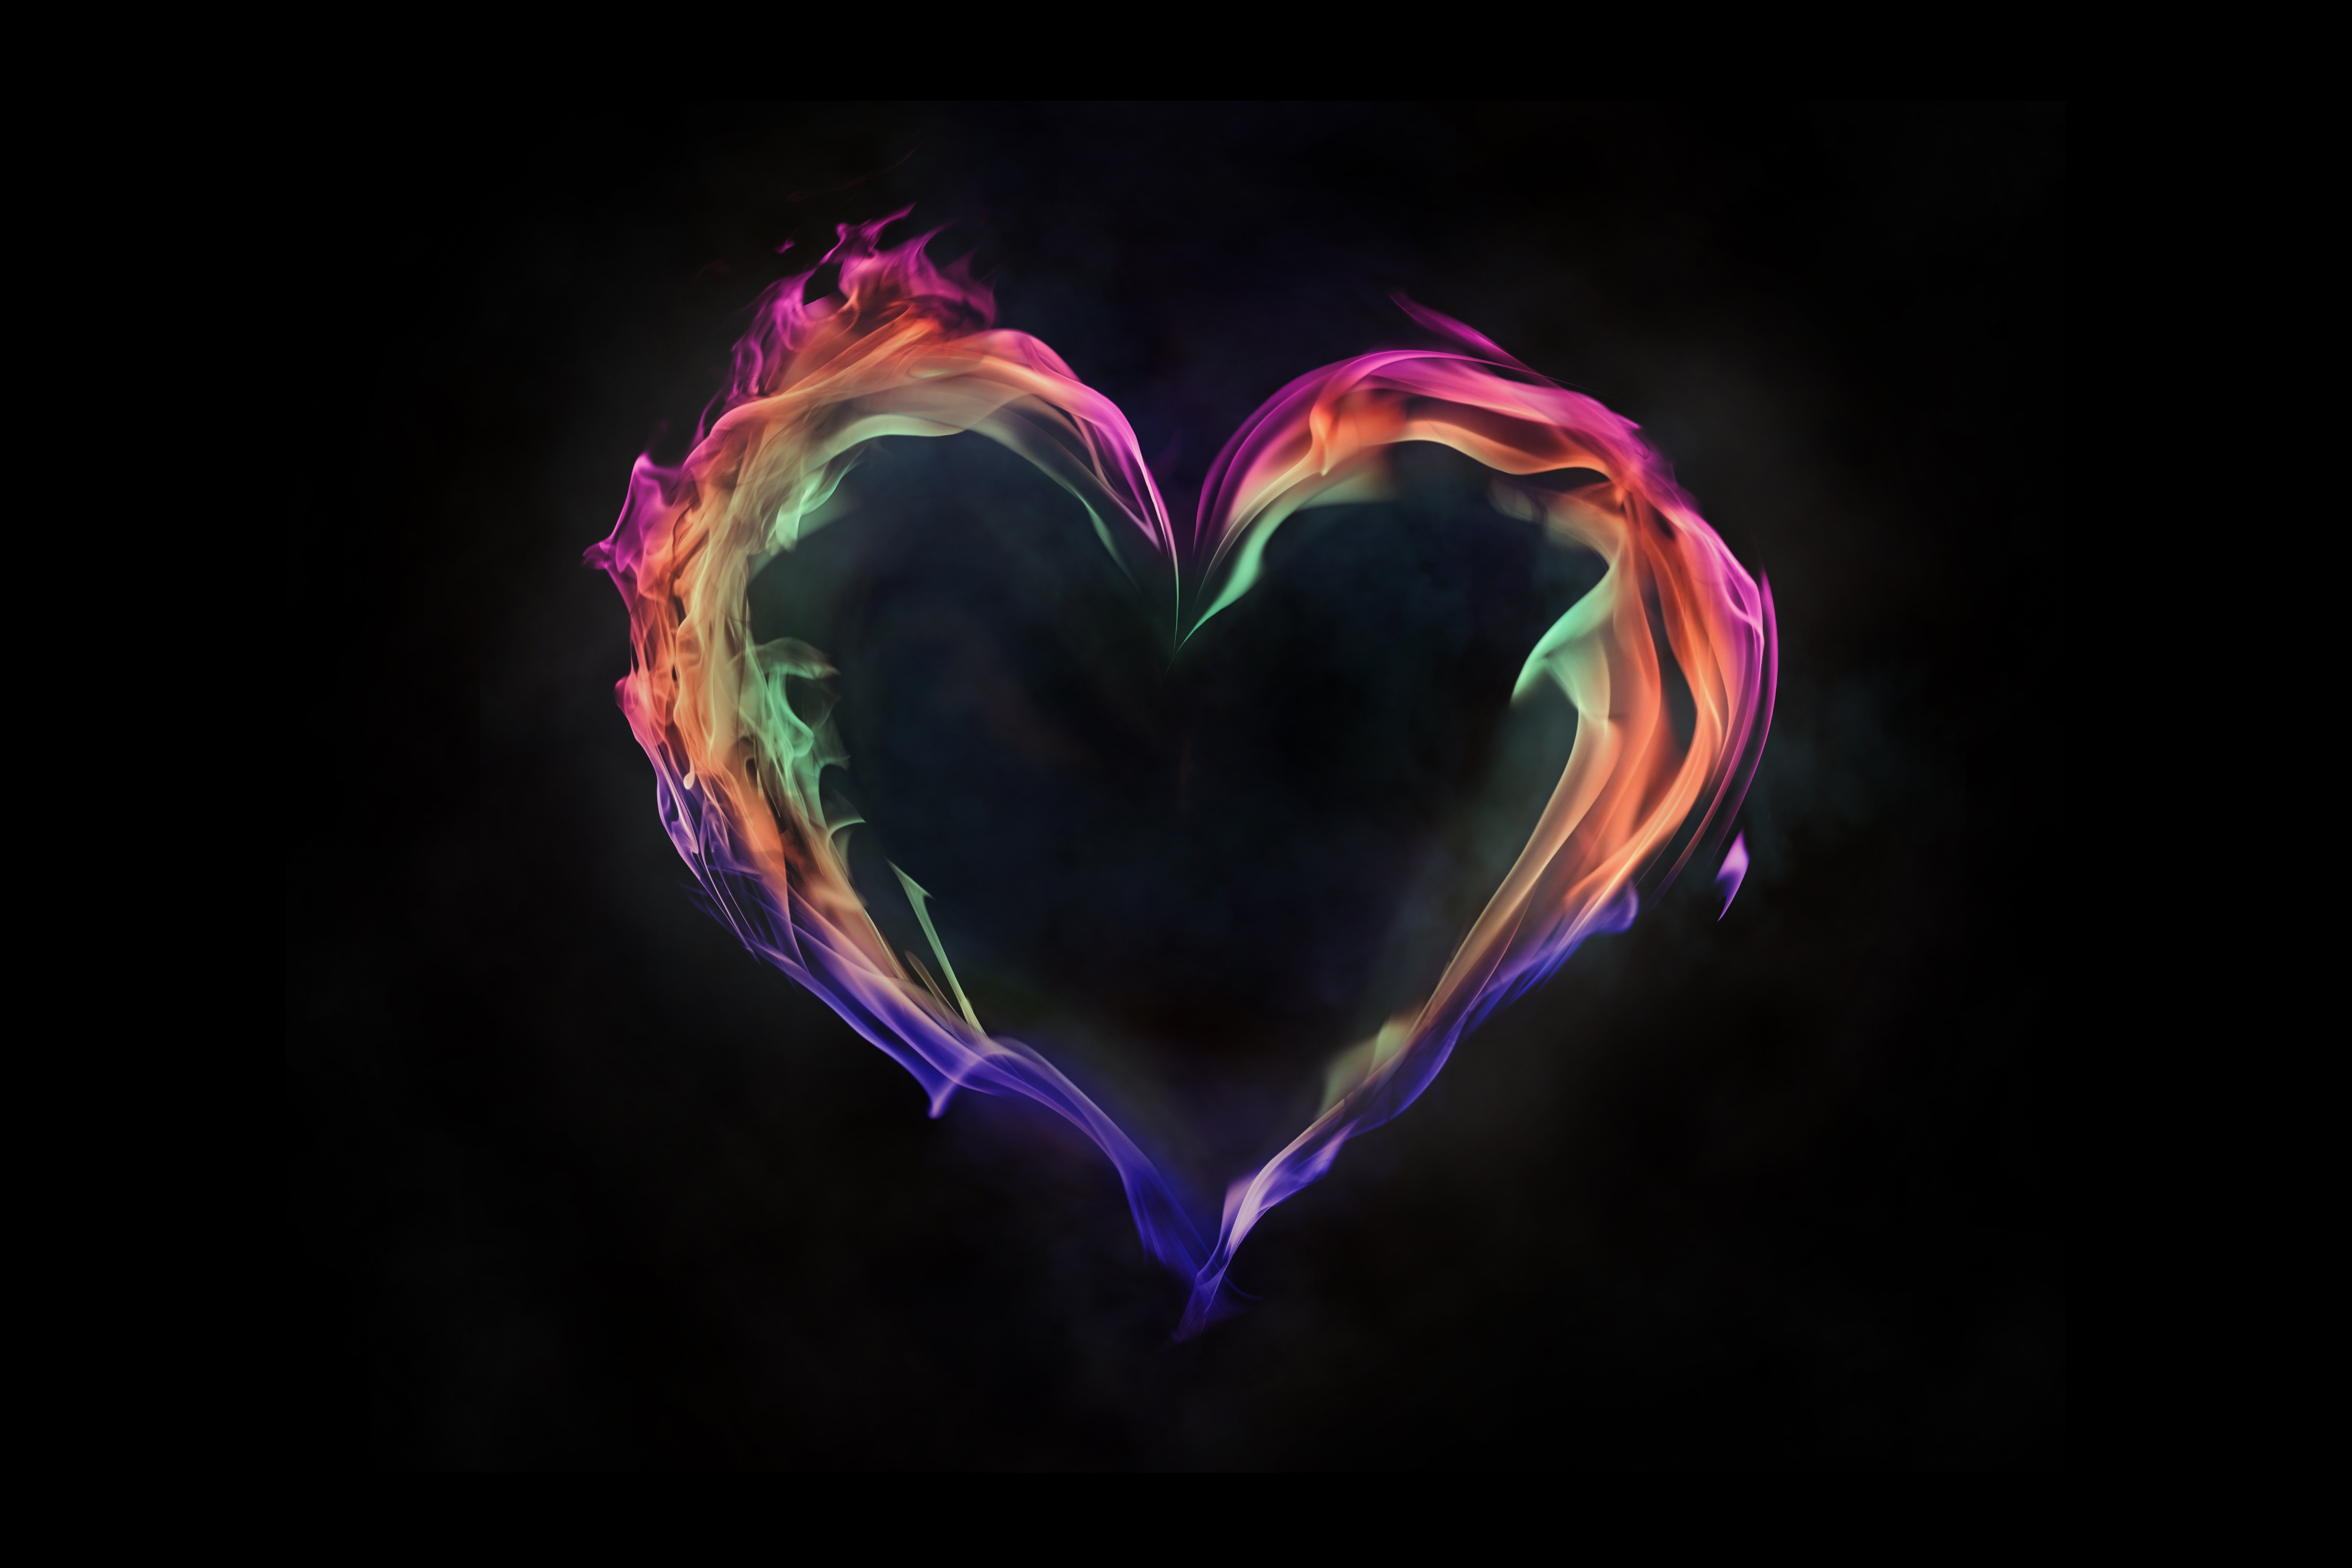 Flame Love Colors 6000x4000